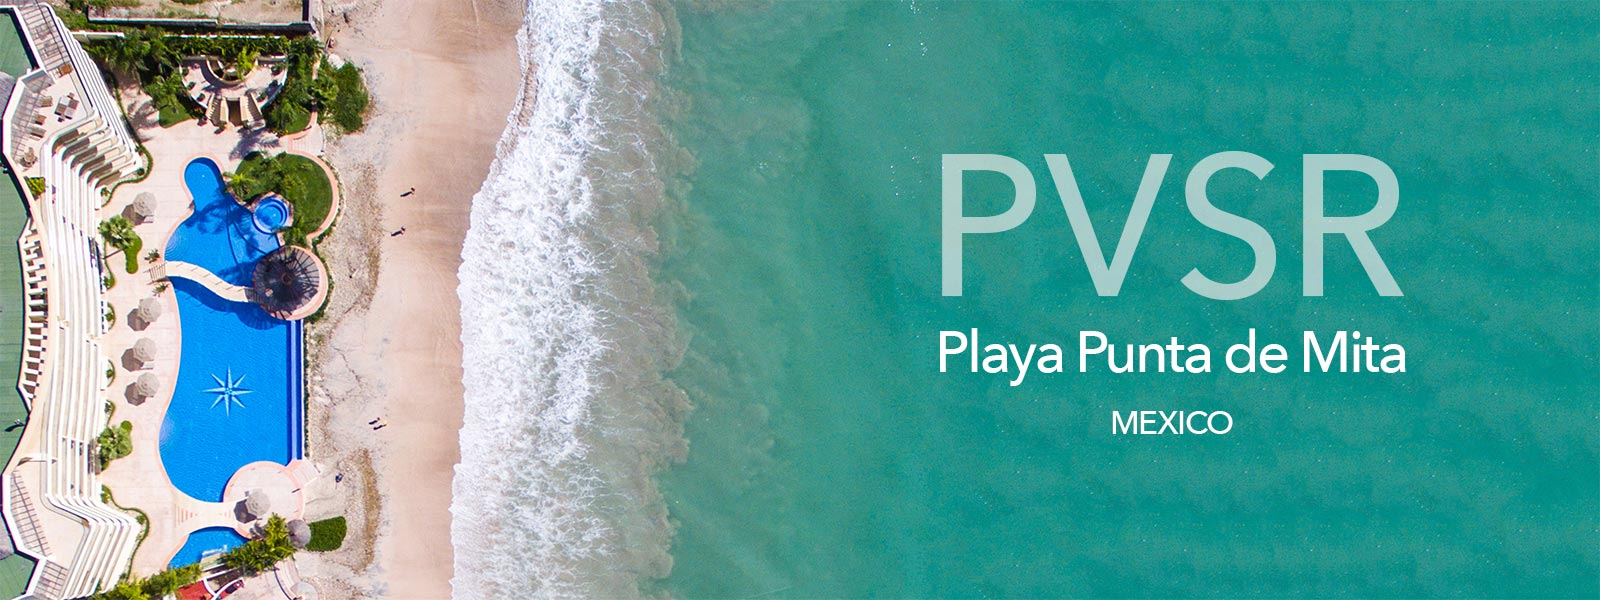 PVSR 201 - Luxury vacation rental condo on Playa Punta de Mita, Riviera Nayarit, Mexico